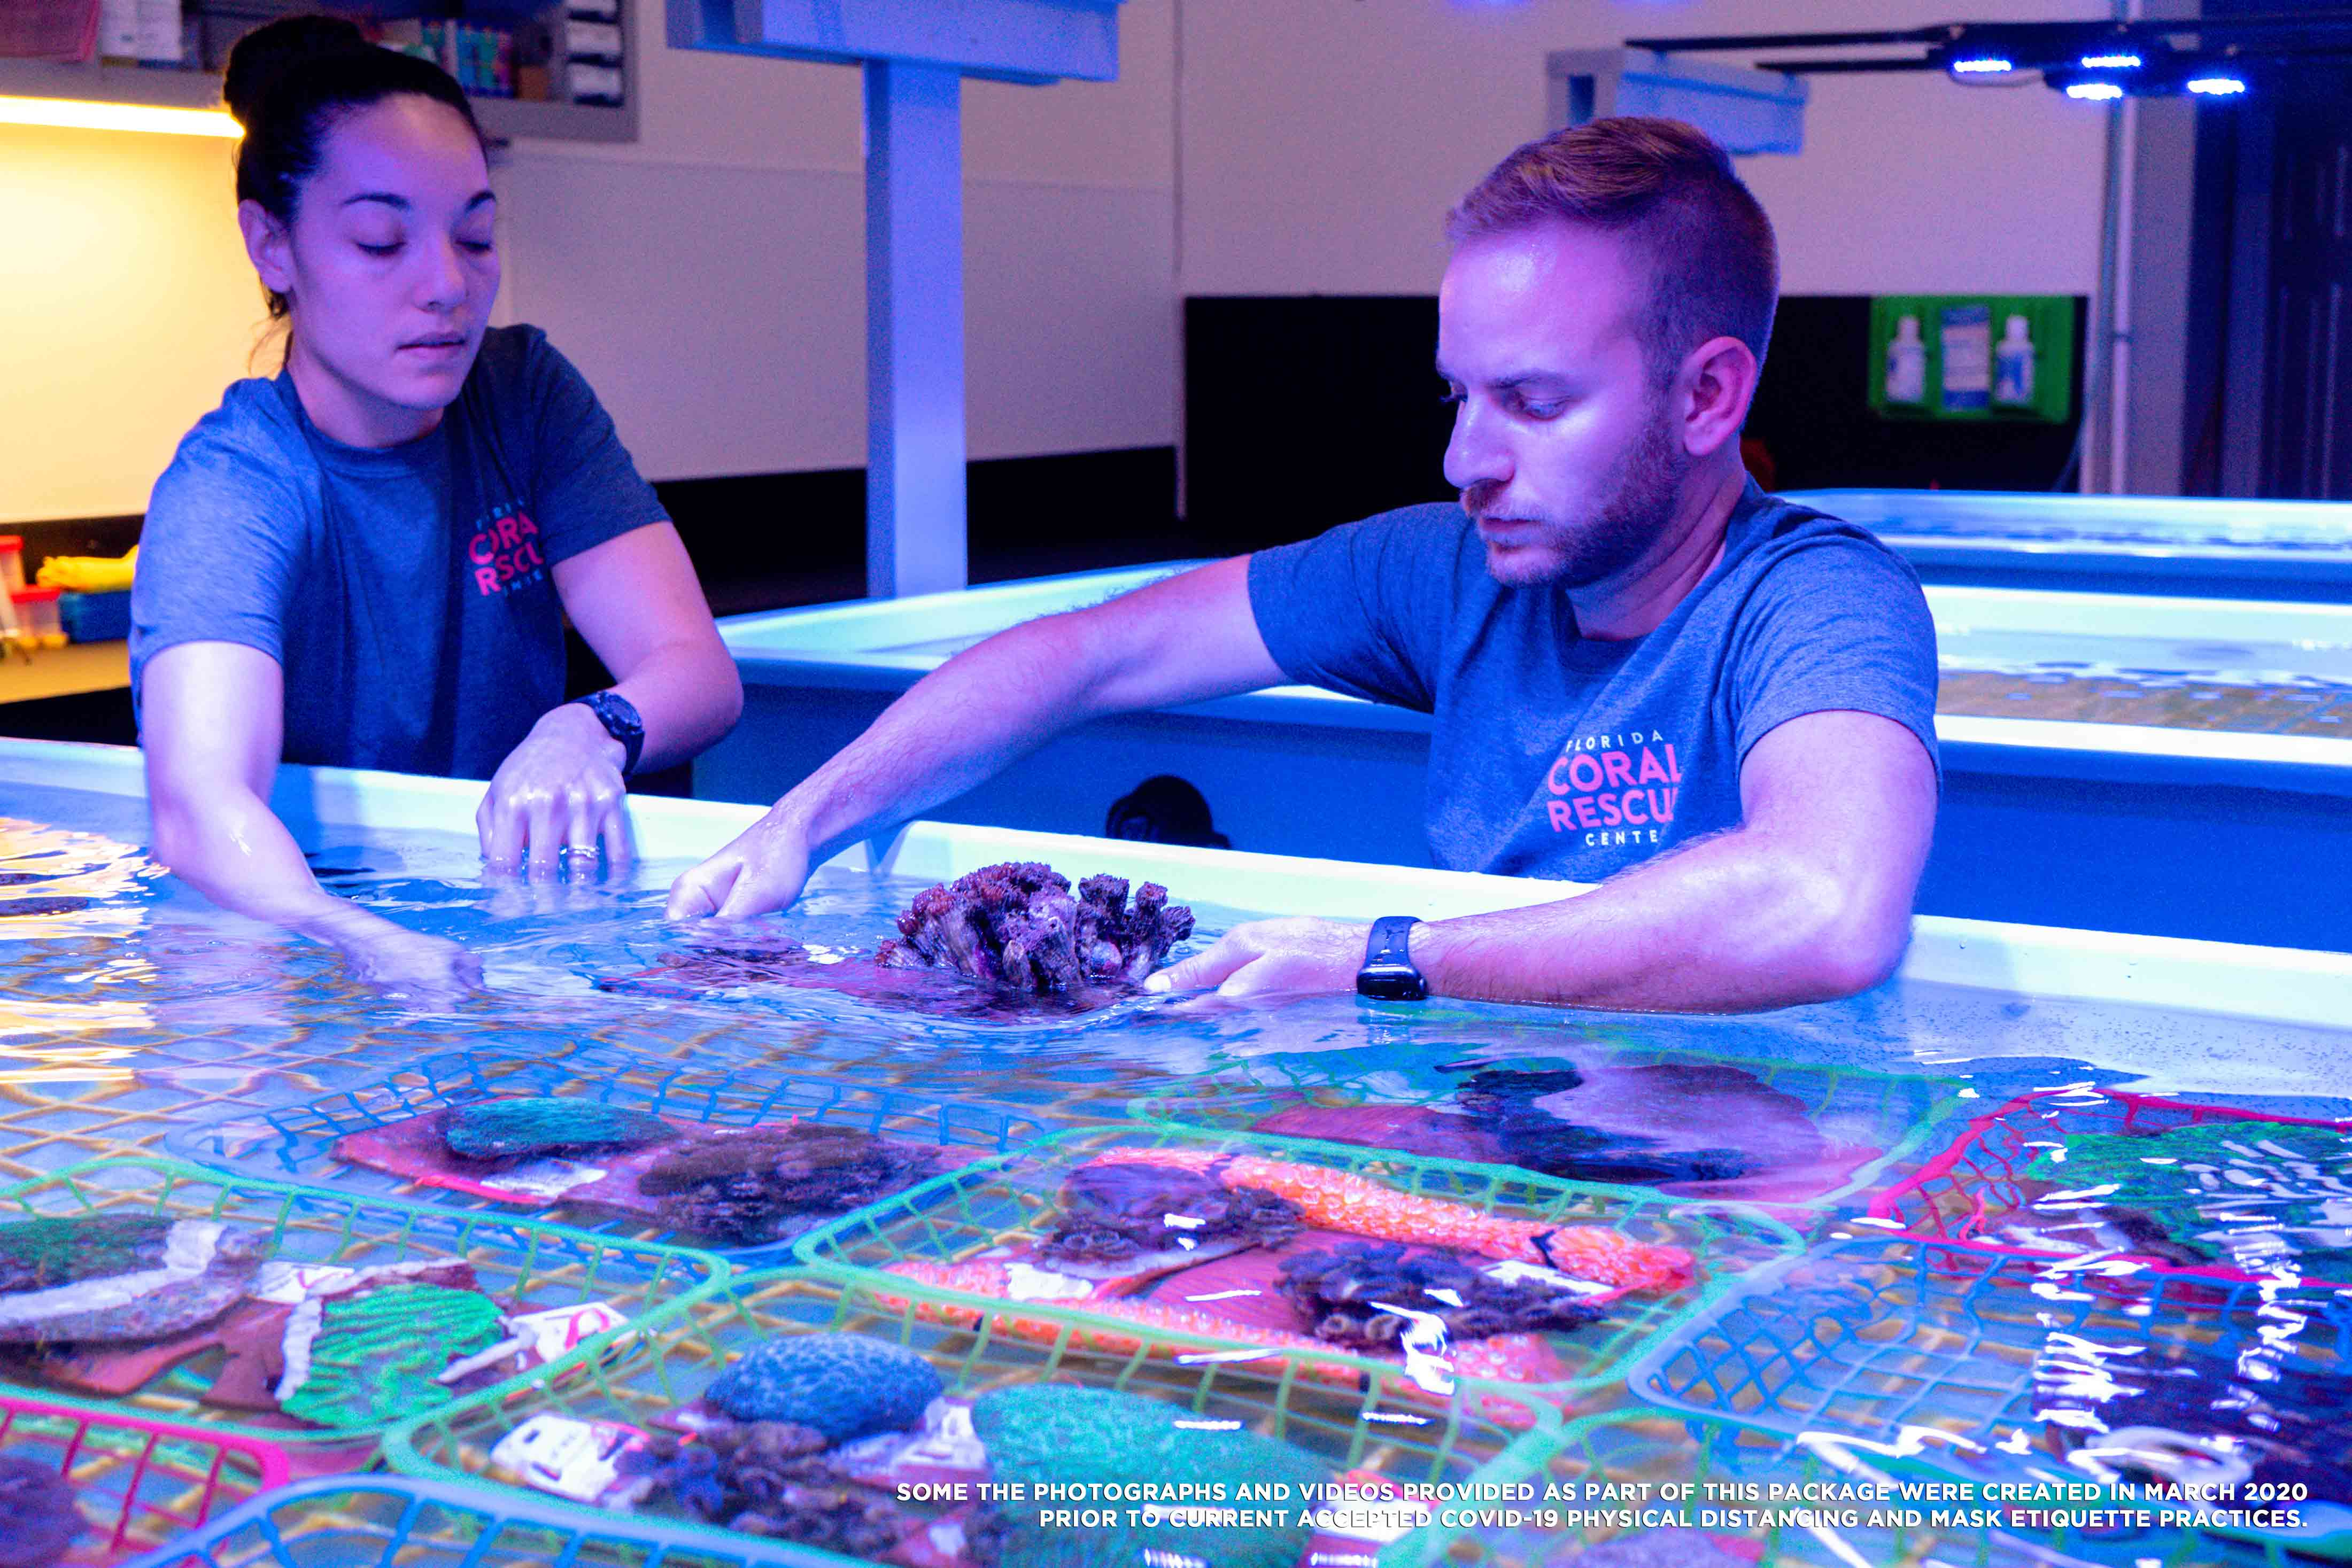 Staff at the Florida Coral Rescue Center working with the coral